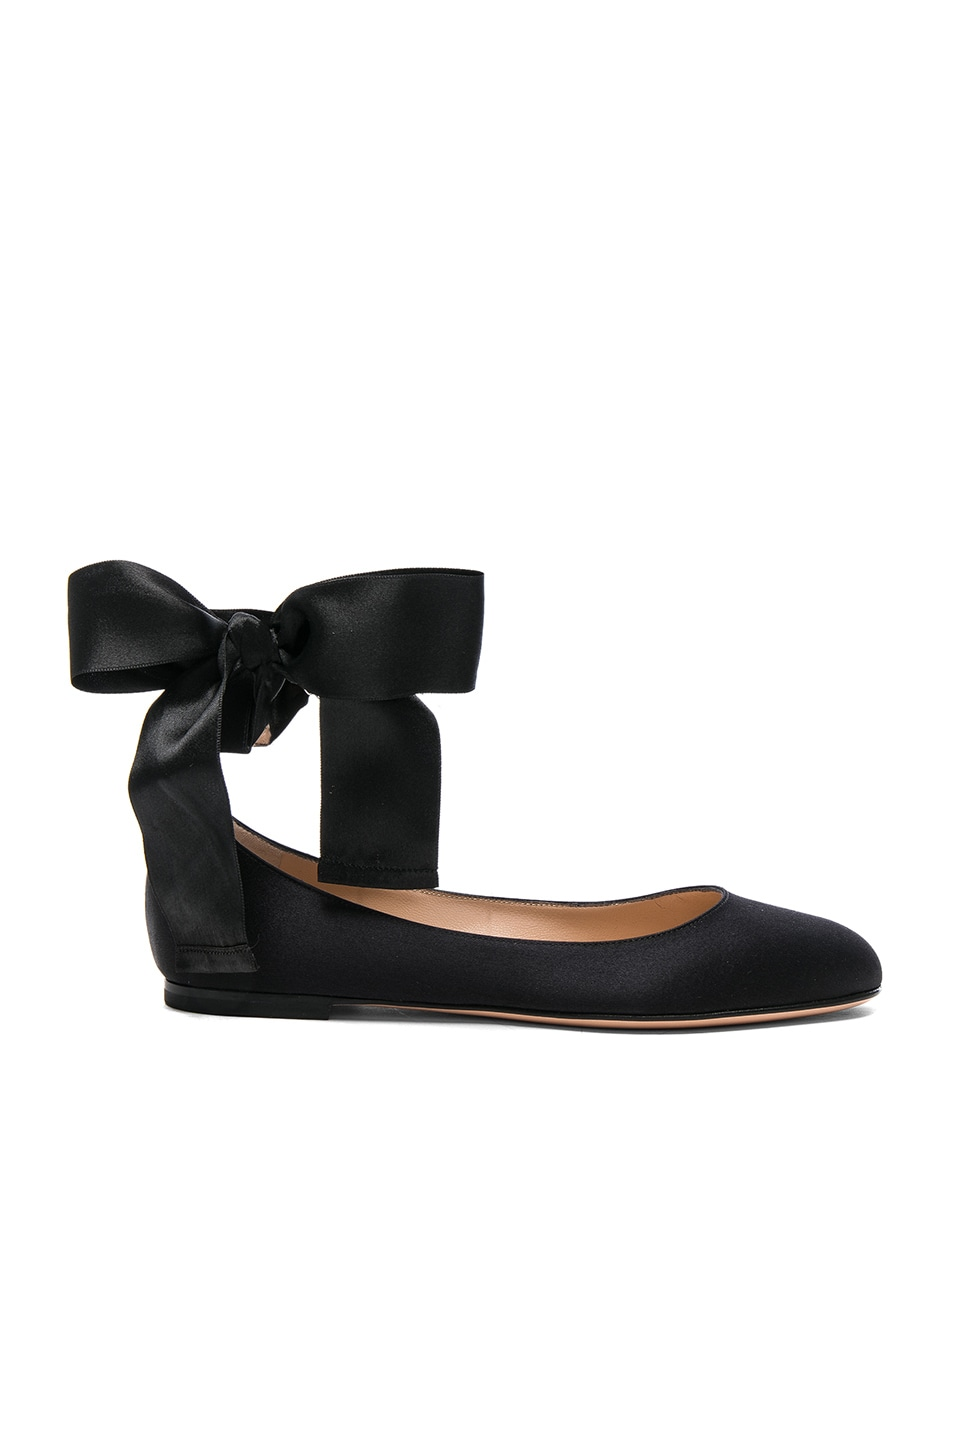 Image 1 of Gianvito Rossi Satin Odette Ankle Tie Flats in Black